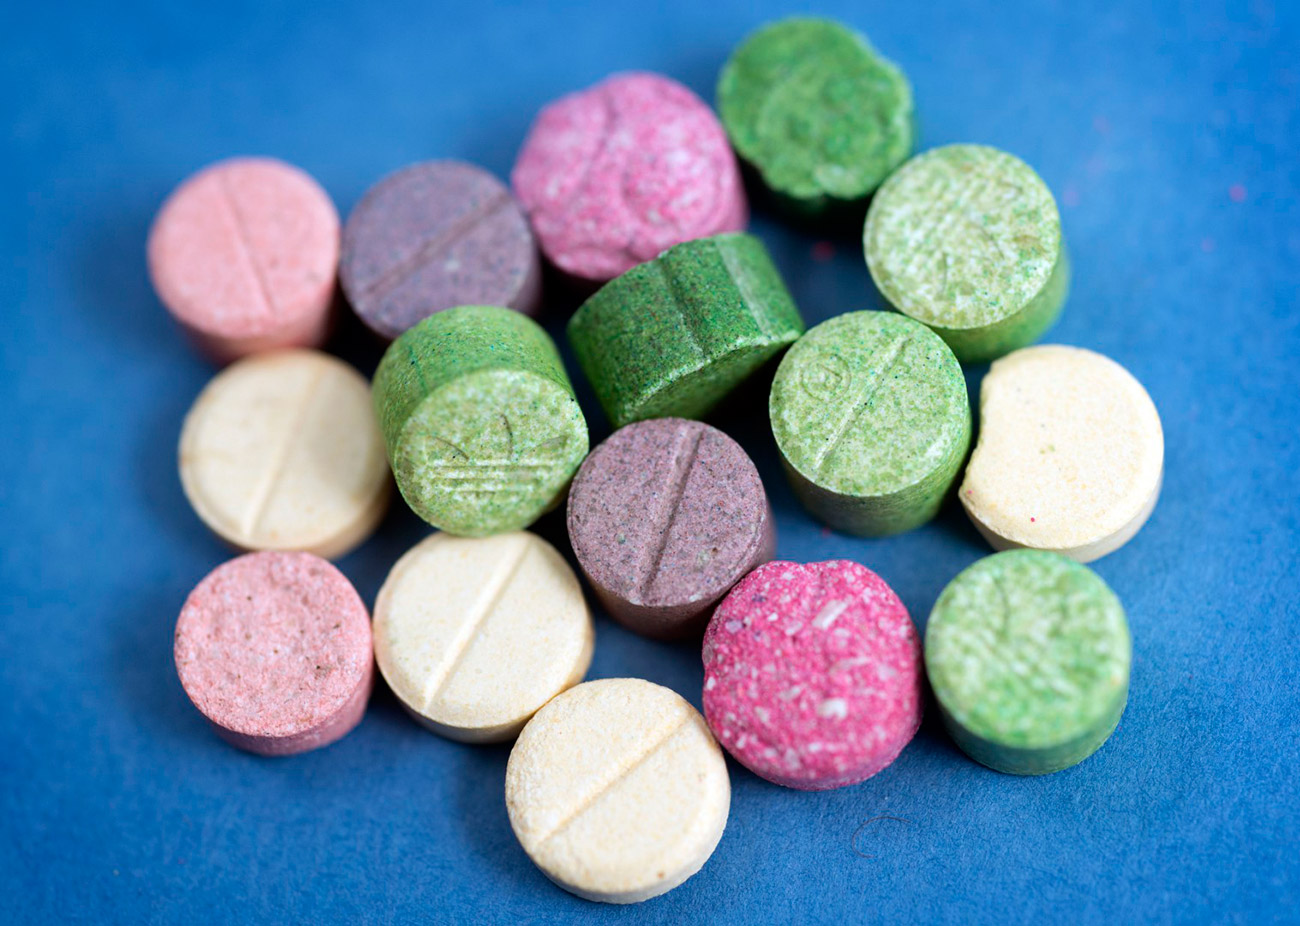 a study of mdma or ecstasy Ecstasy – or 3,4-methylenedioxymethamphetamine, or mdma – came into widespread use in the 1980s when taking it was linked to raves and the playing of dance music  in halpern's study only .